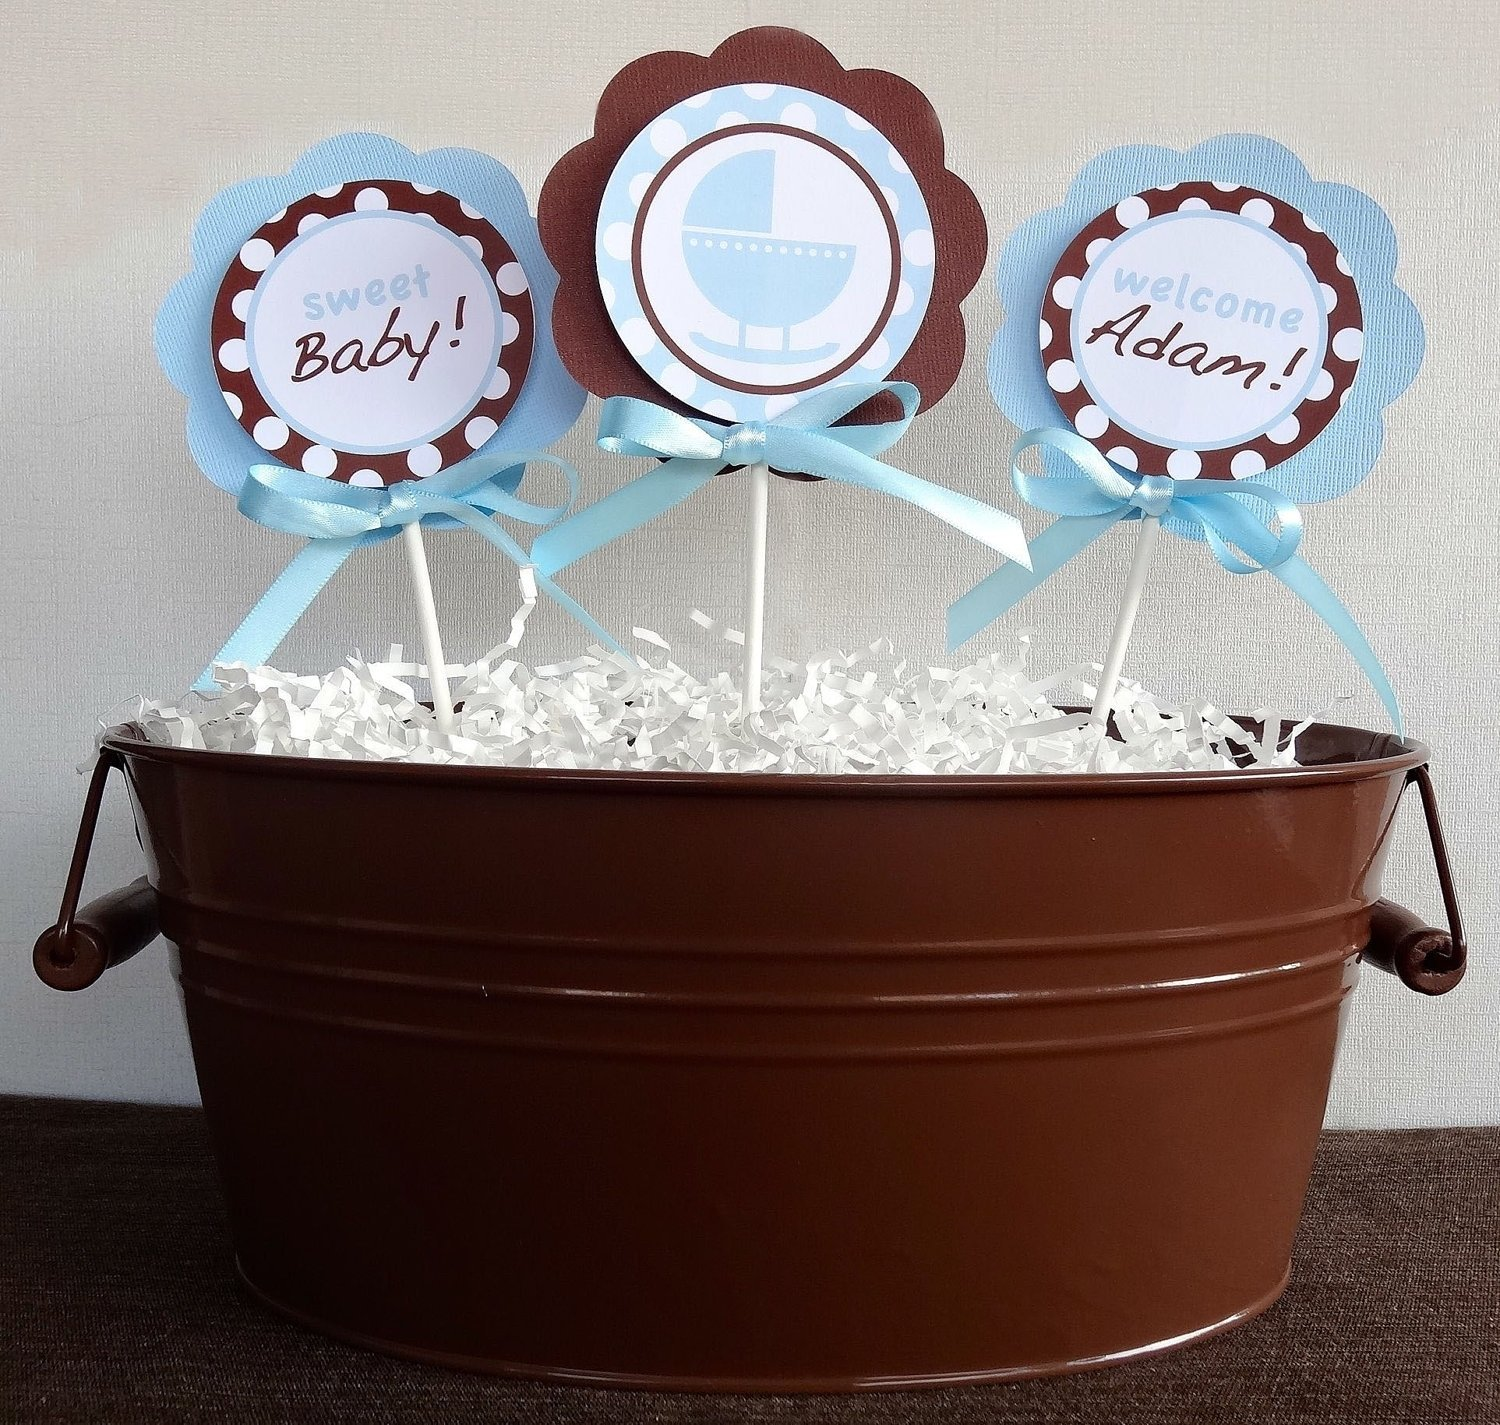 10 Fabulous Blue And Brown Baby Shower Ideas blue and brown baby shower ideas babywiseguides 2020